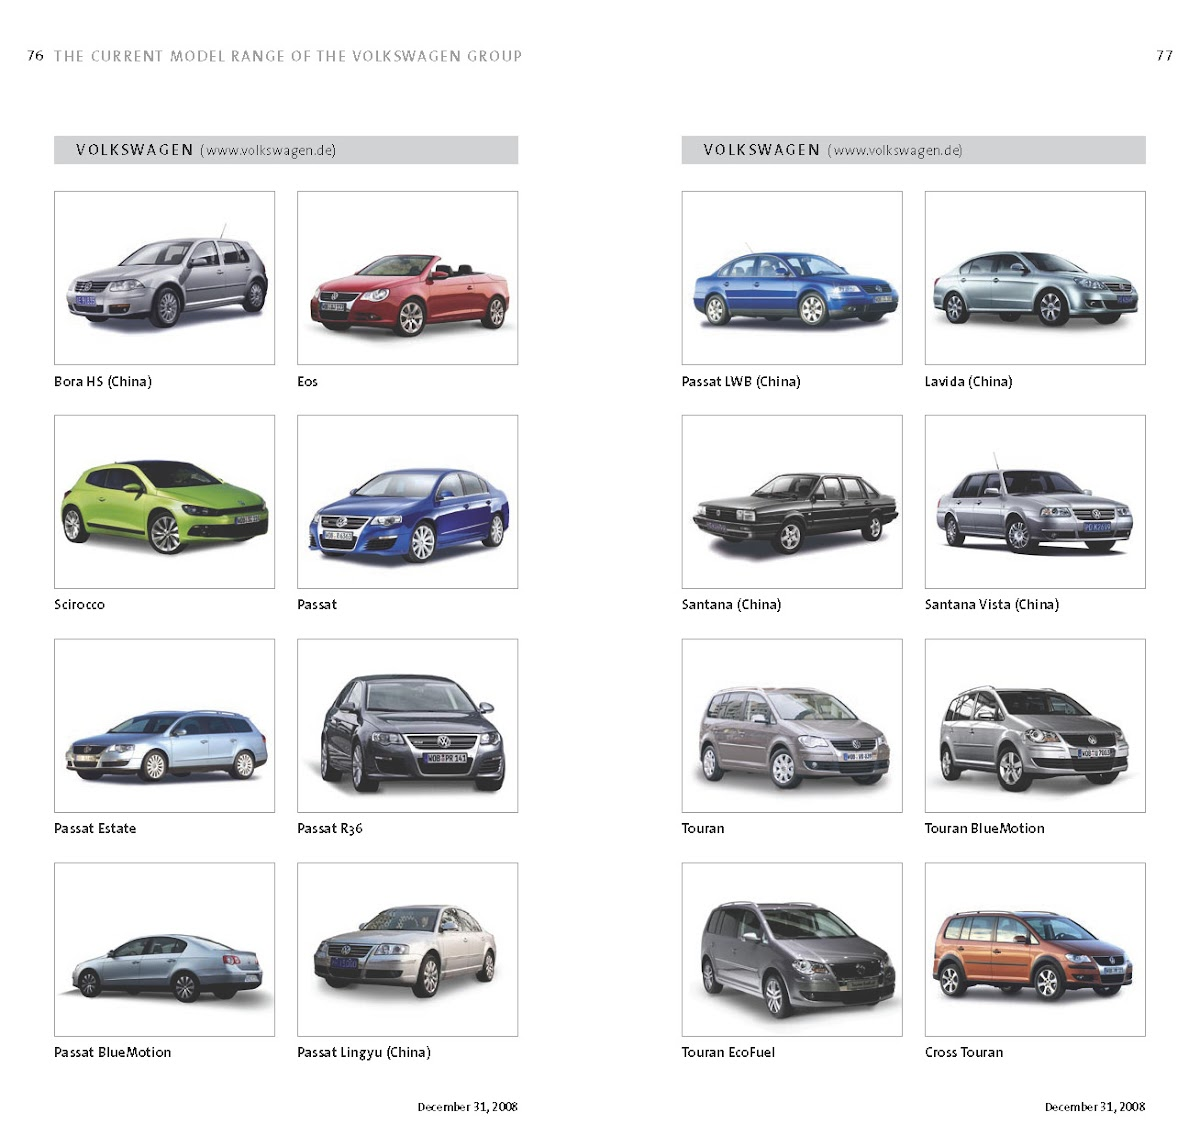 Complete List of VW Groups 178 Models Sold Worldwide